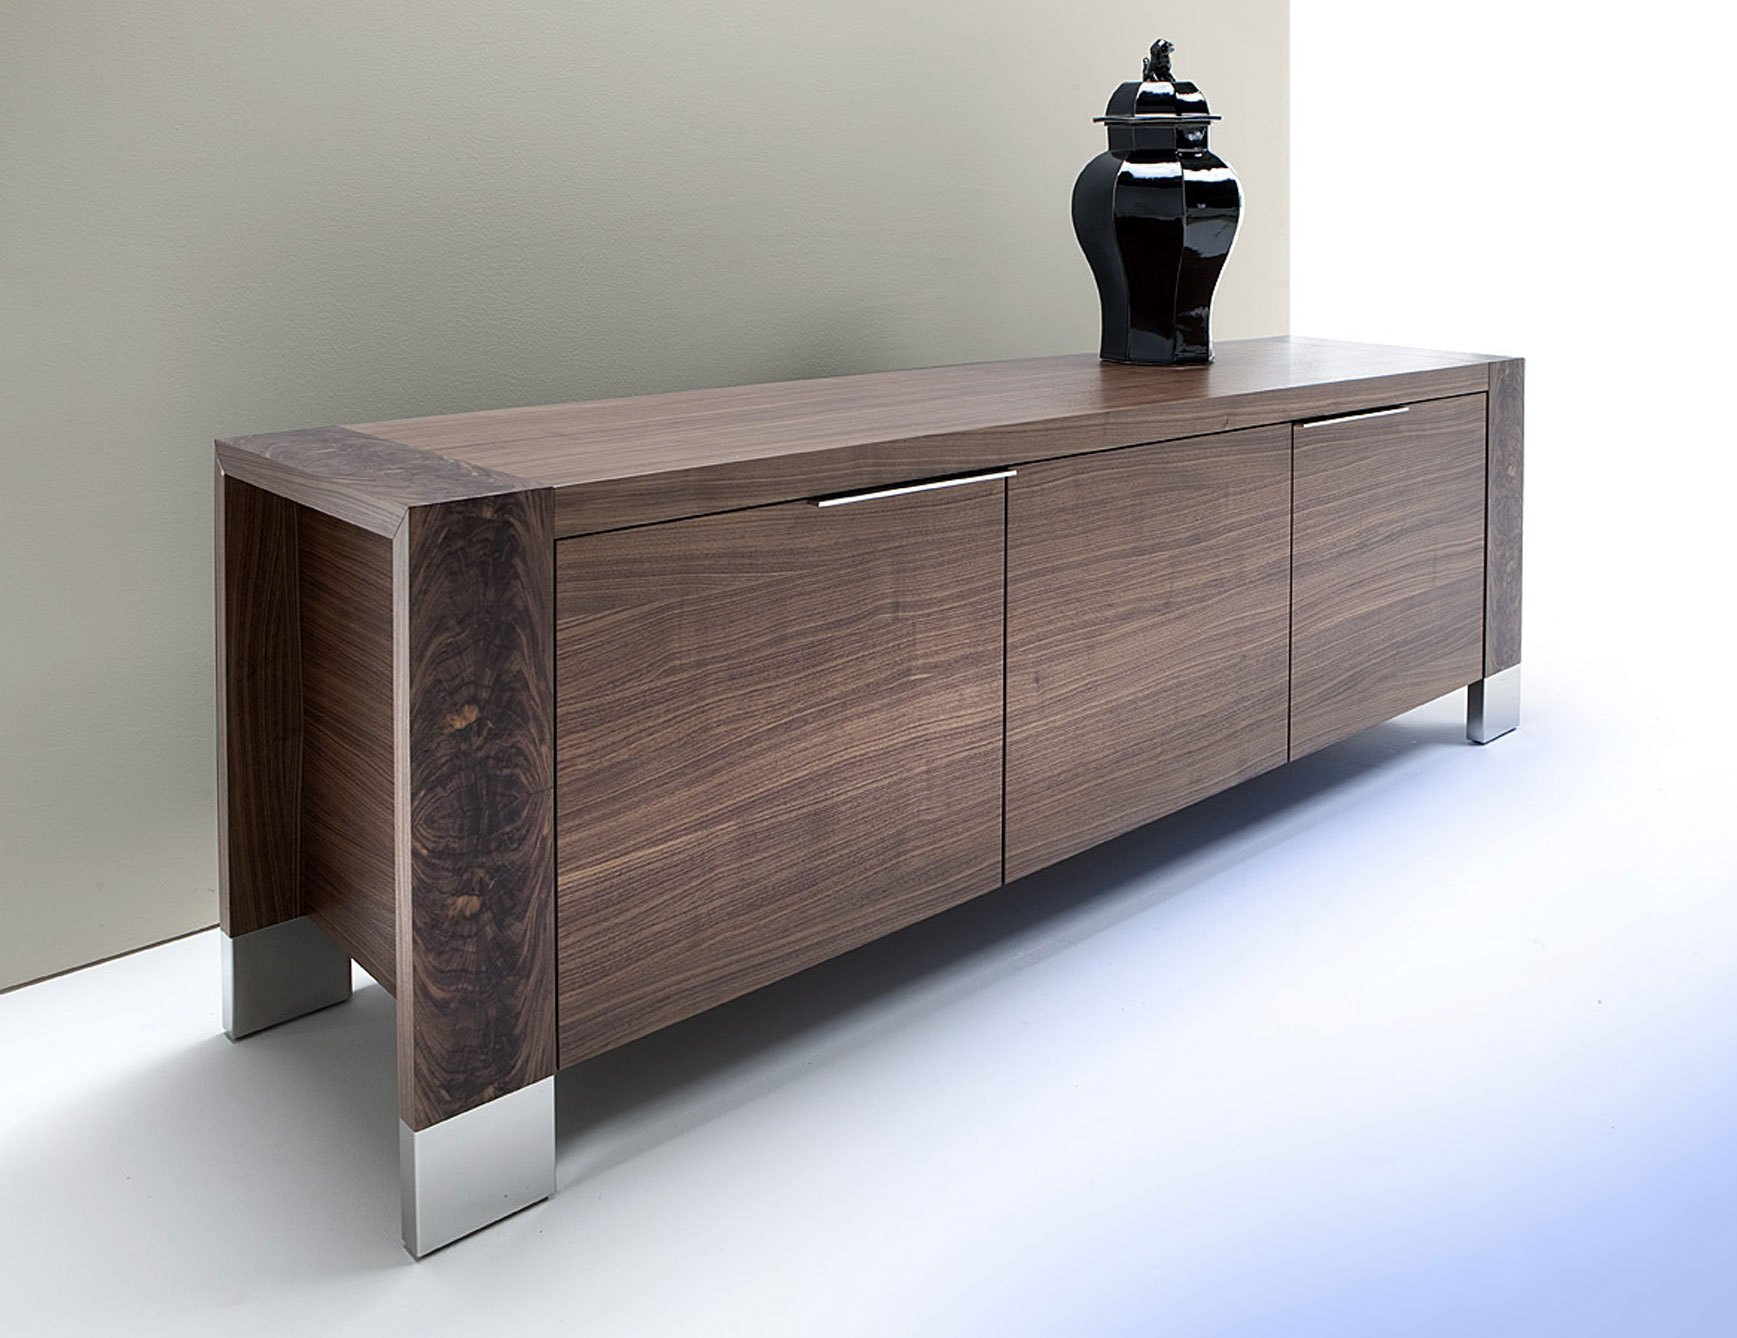 Furniture Fashion12 Cool Modern Buffet Tables For Dining for Courtdale Sideboards (Image 19 of 30)